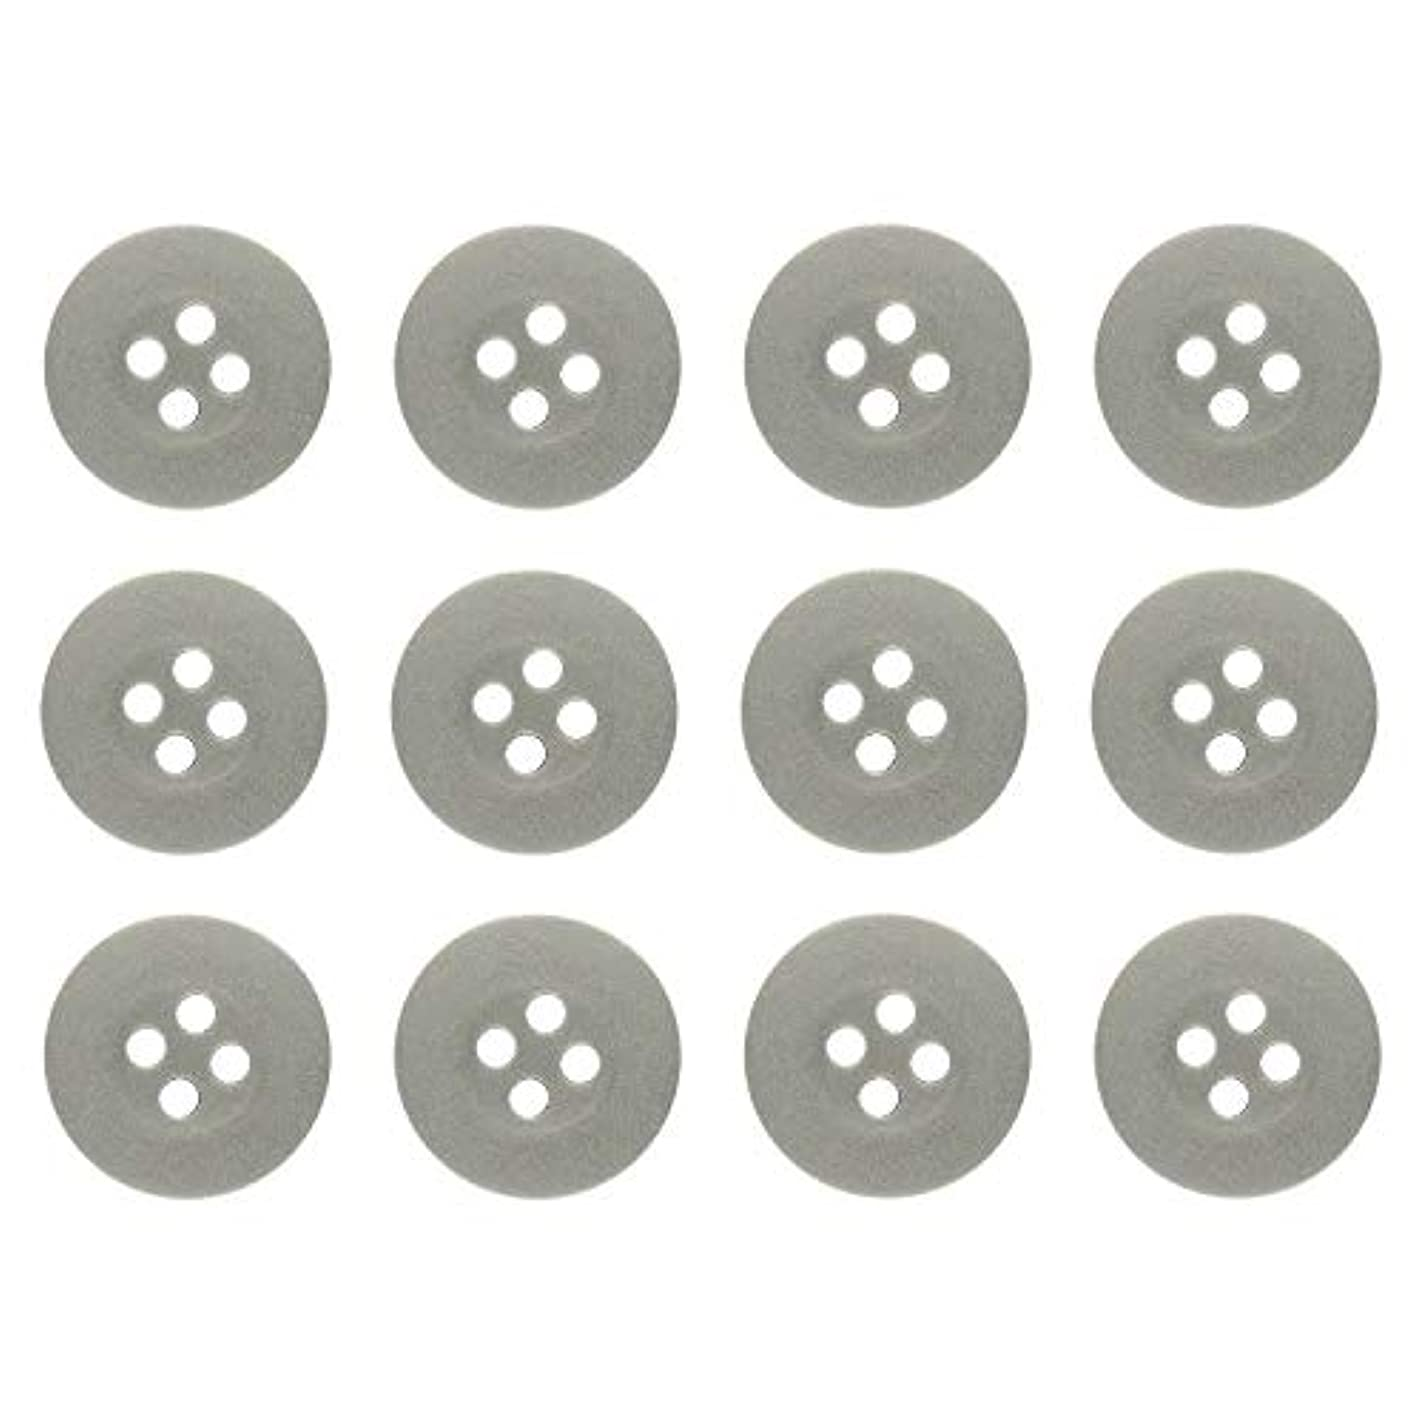 ButtonMode Khakis, Chinos and Cotton Pants Buttons Set Includes 1-Dozen Buttons Measuring 15mm (5/8 Inch), Dark Tan, 12-Buttons